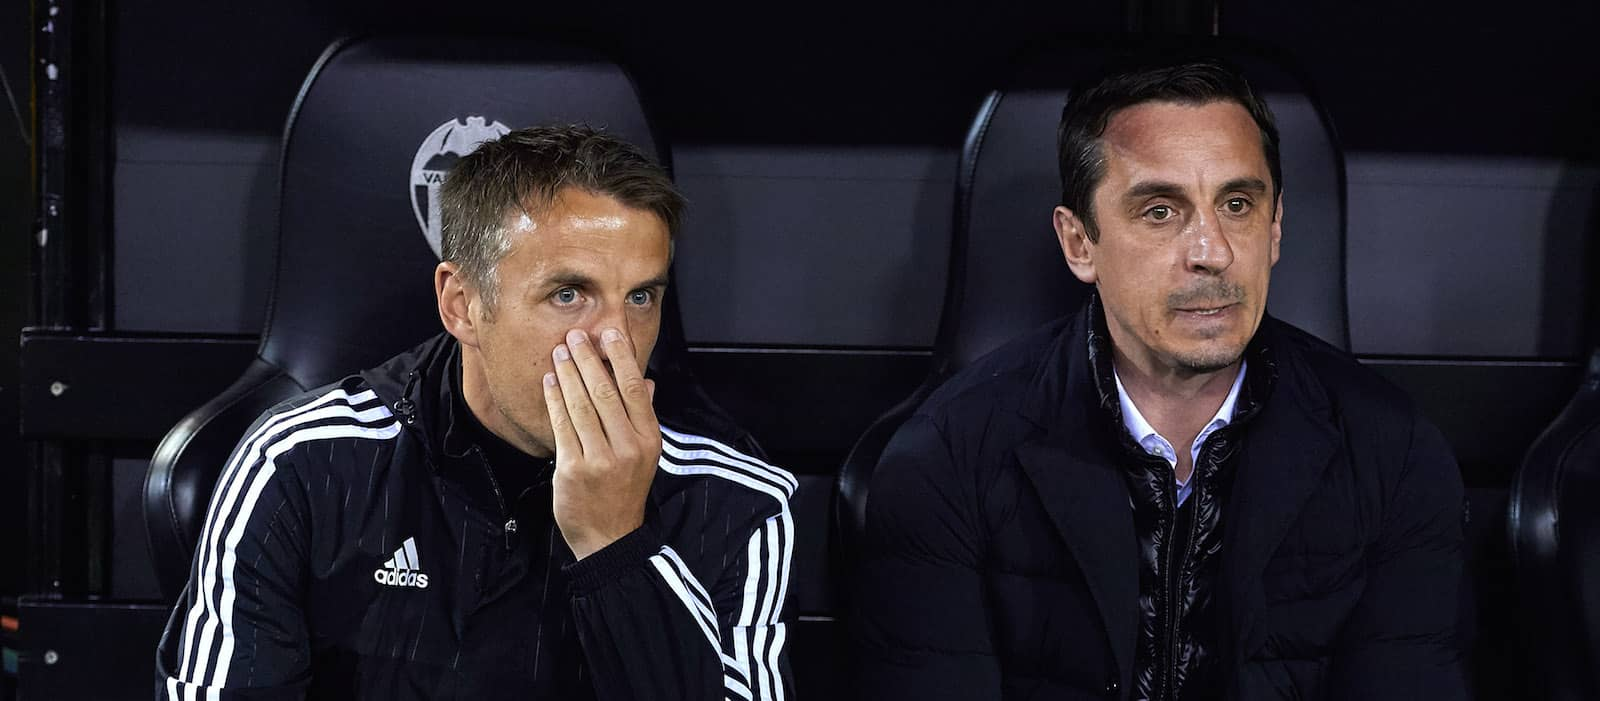 Gary Neville: These three Manchester United players are shining like lights for the team